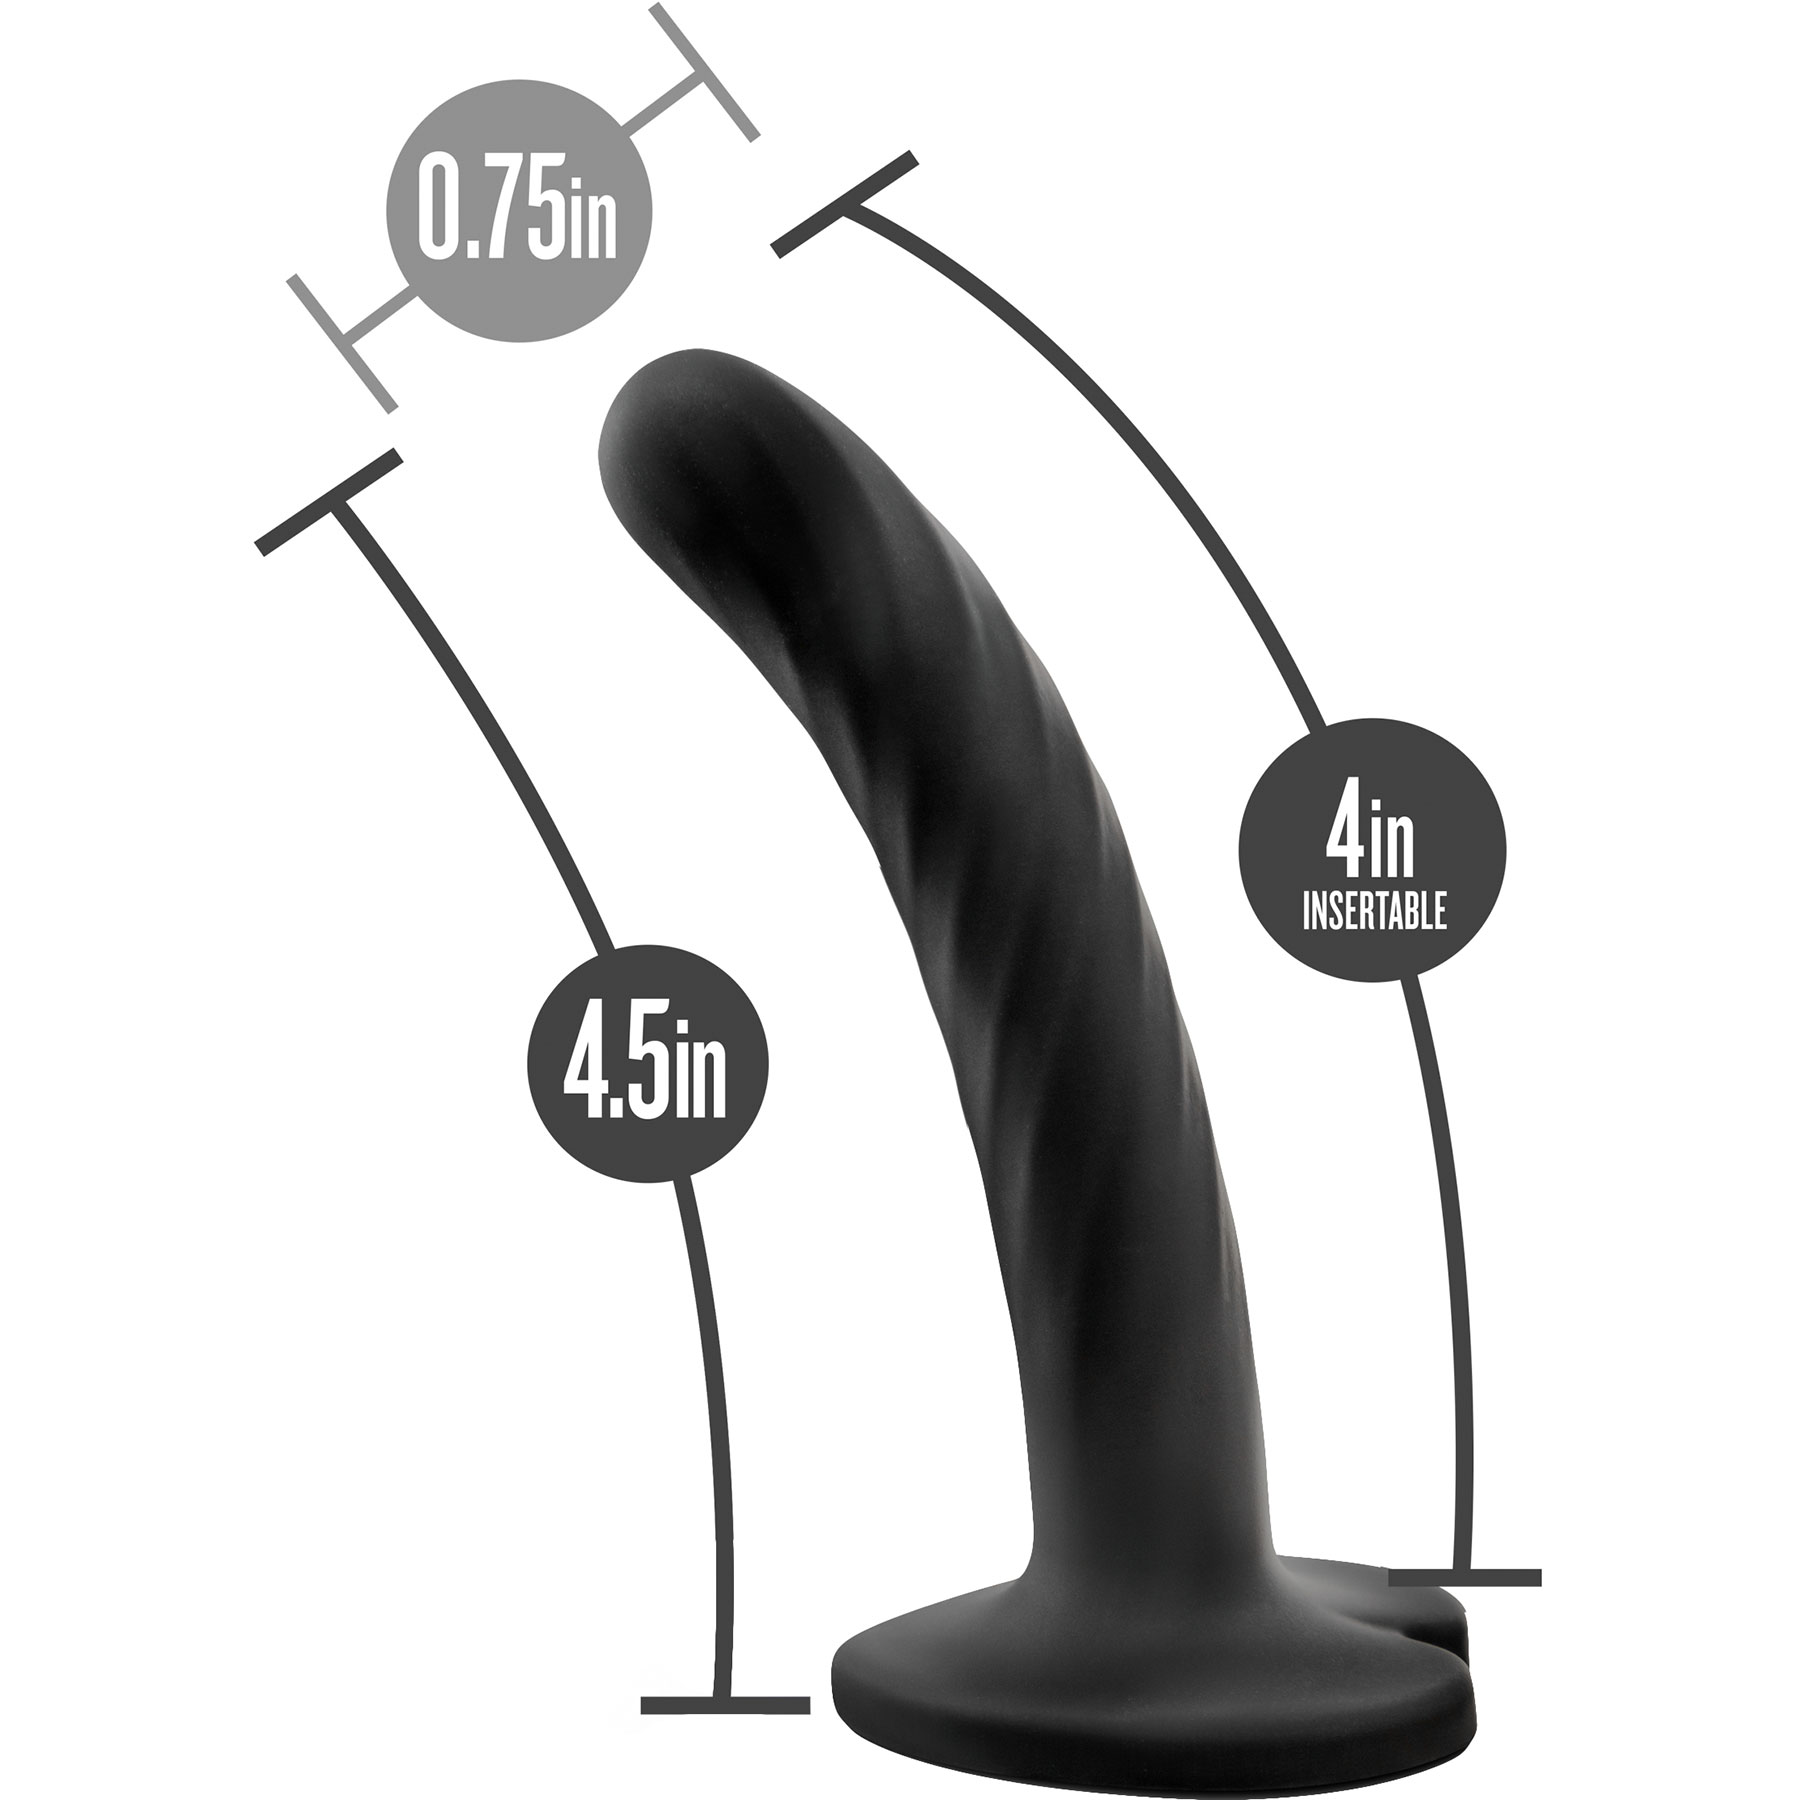 Temptasia Twist Silicone Dildo By Blush Small - Measurement